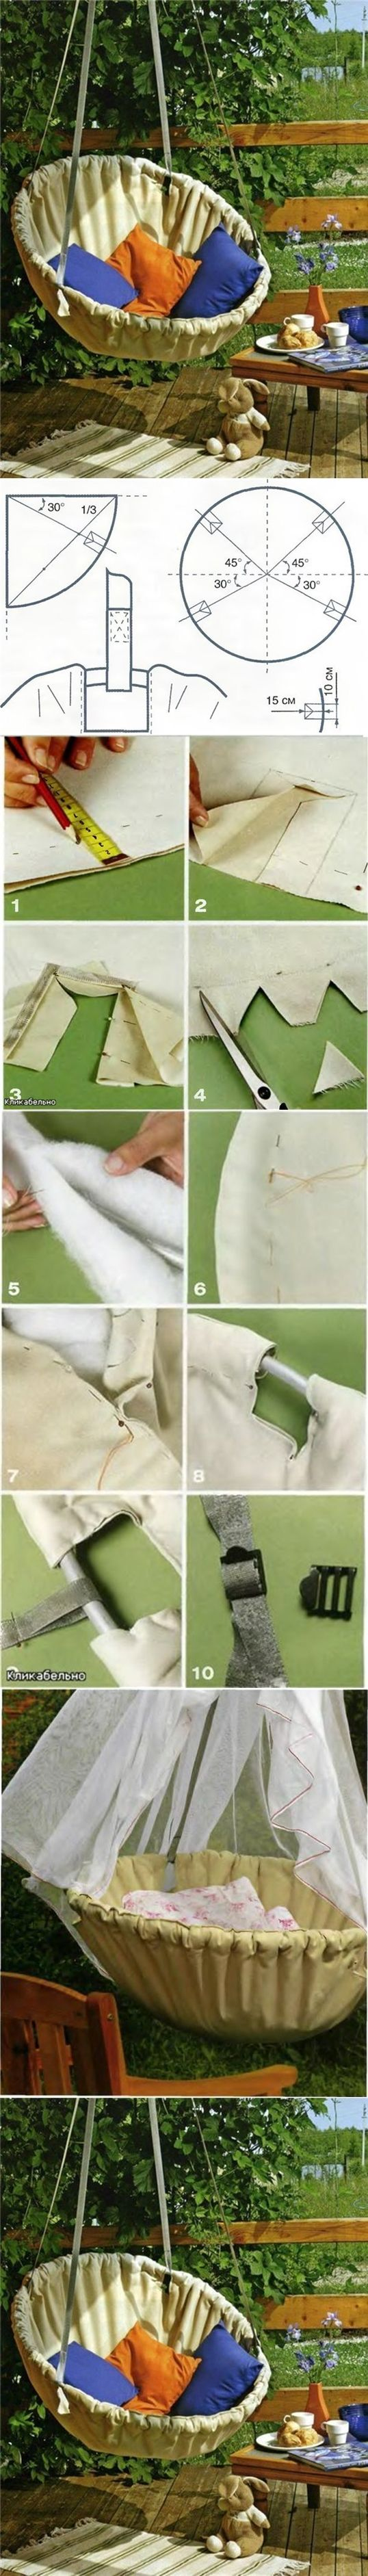 best Érdekes images on pinterest sewing ideas sewing patterns